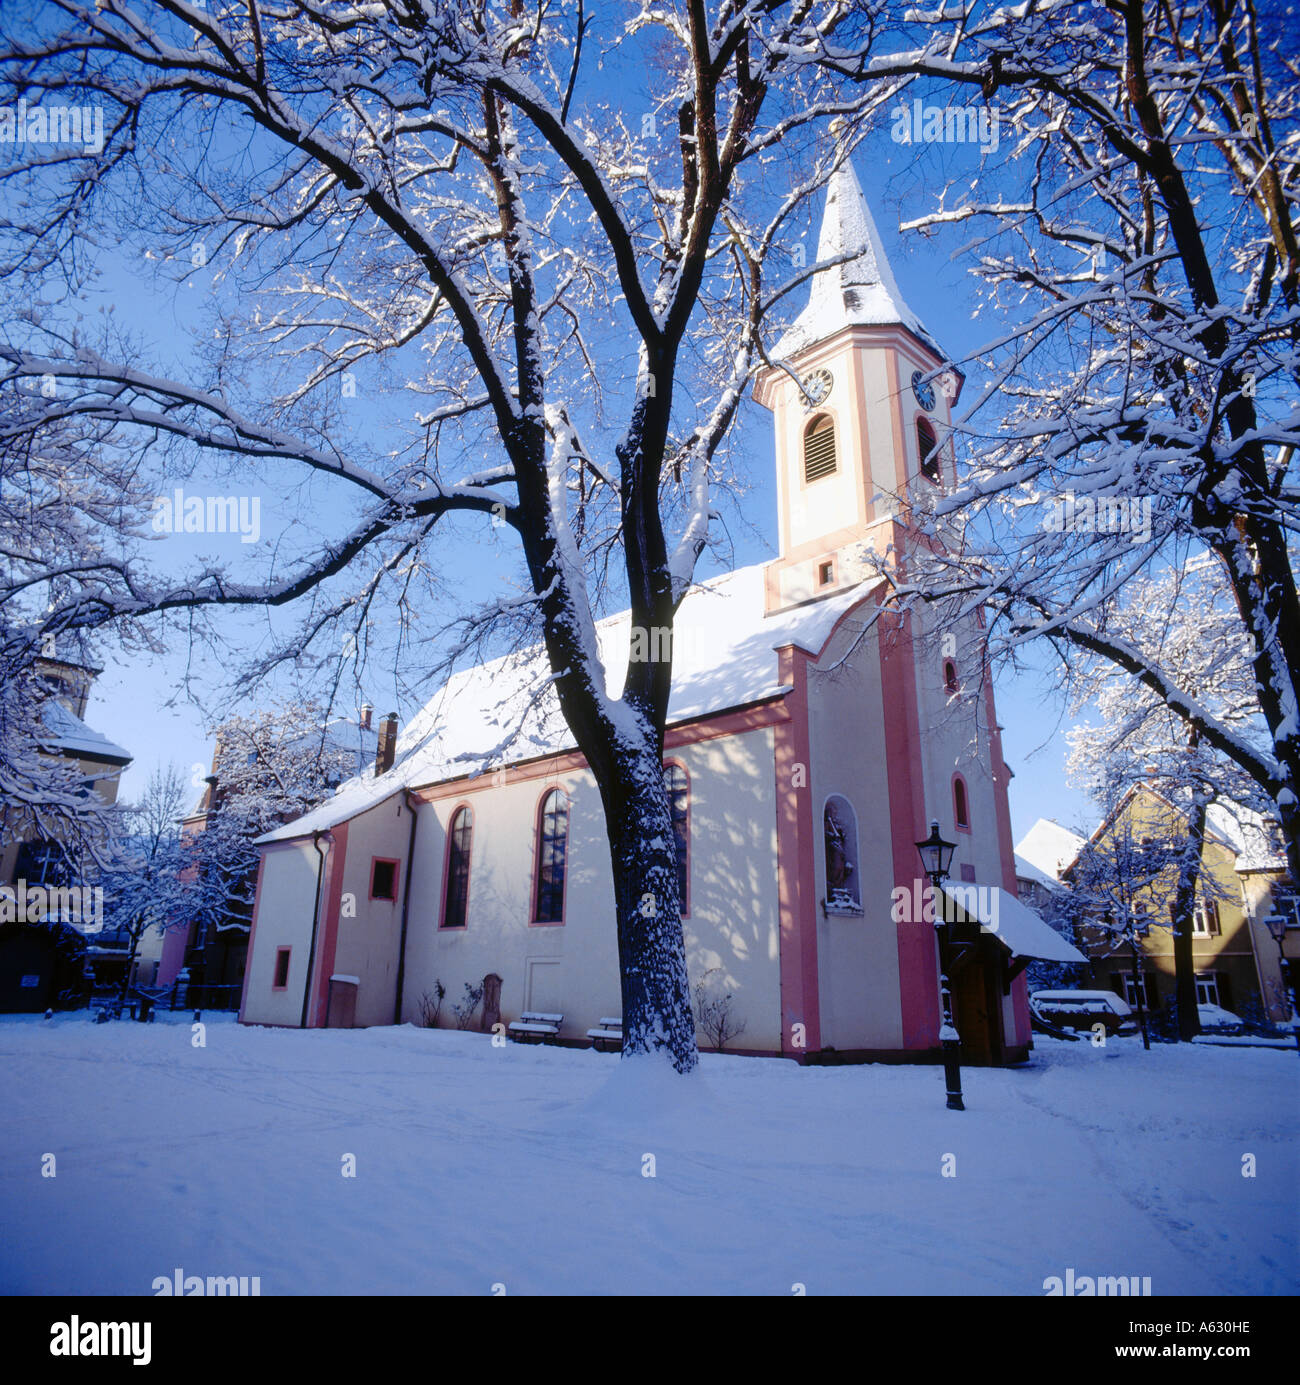 church during winter st anna church freiburg im breisgau stock photo royalty free image. Black Bedroom Furniture Sets. Home Design Ideas